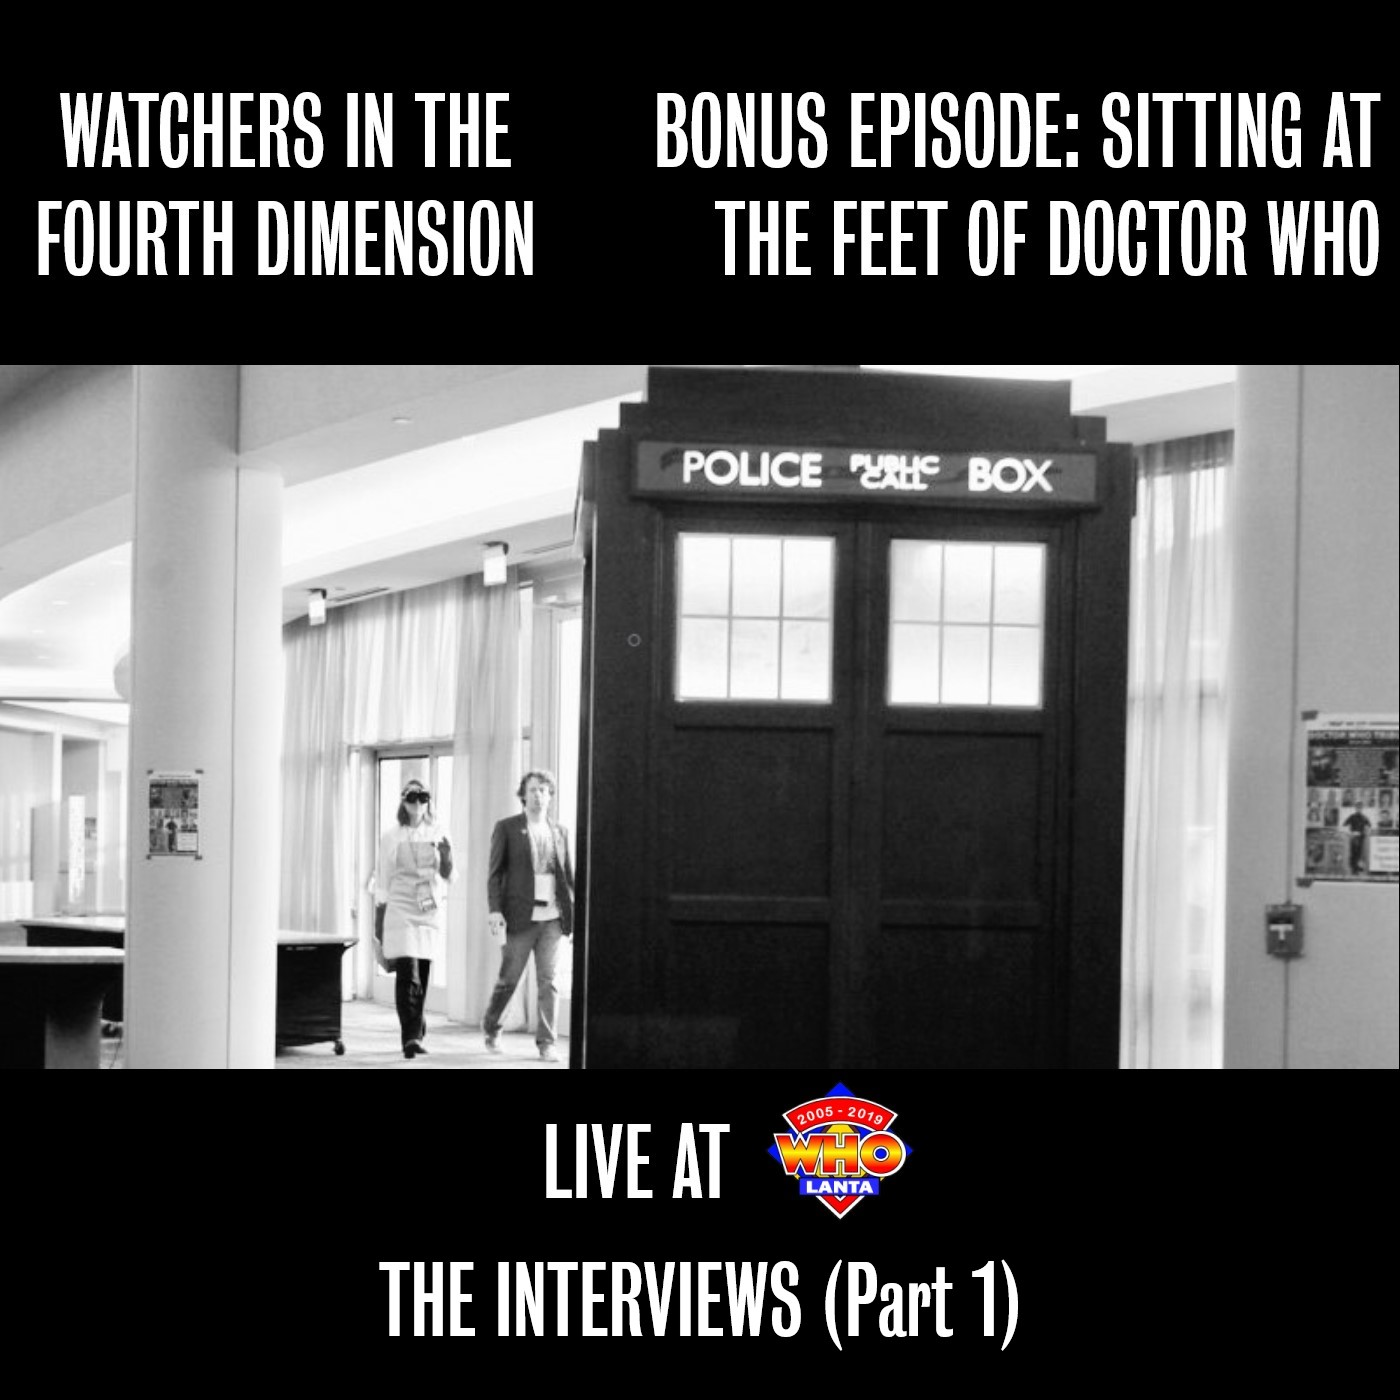 Bonus Episode: Sitting at the Feet of Doctor Who - Live at WHOlanta 2019